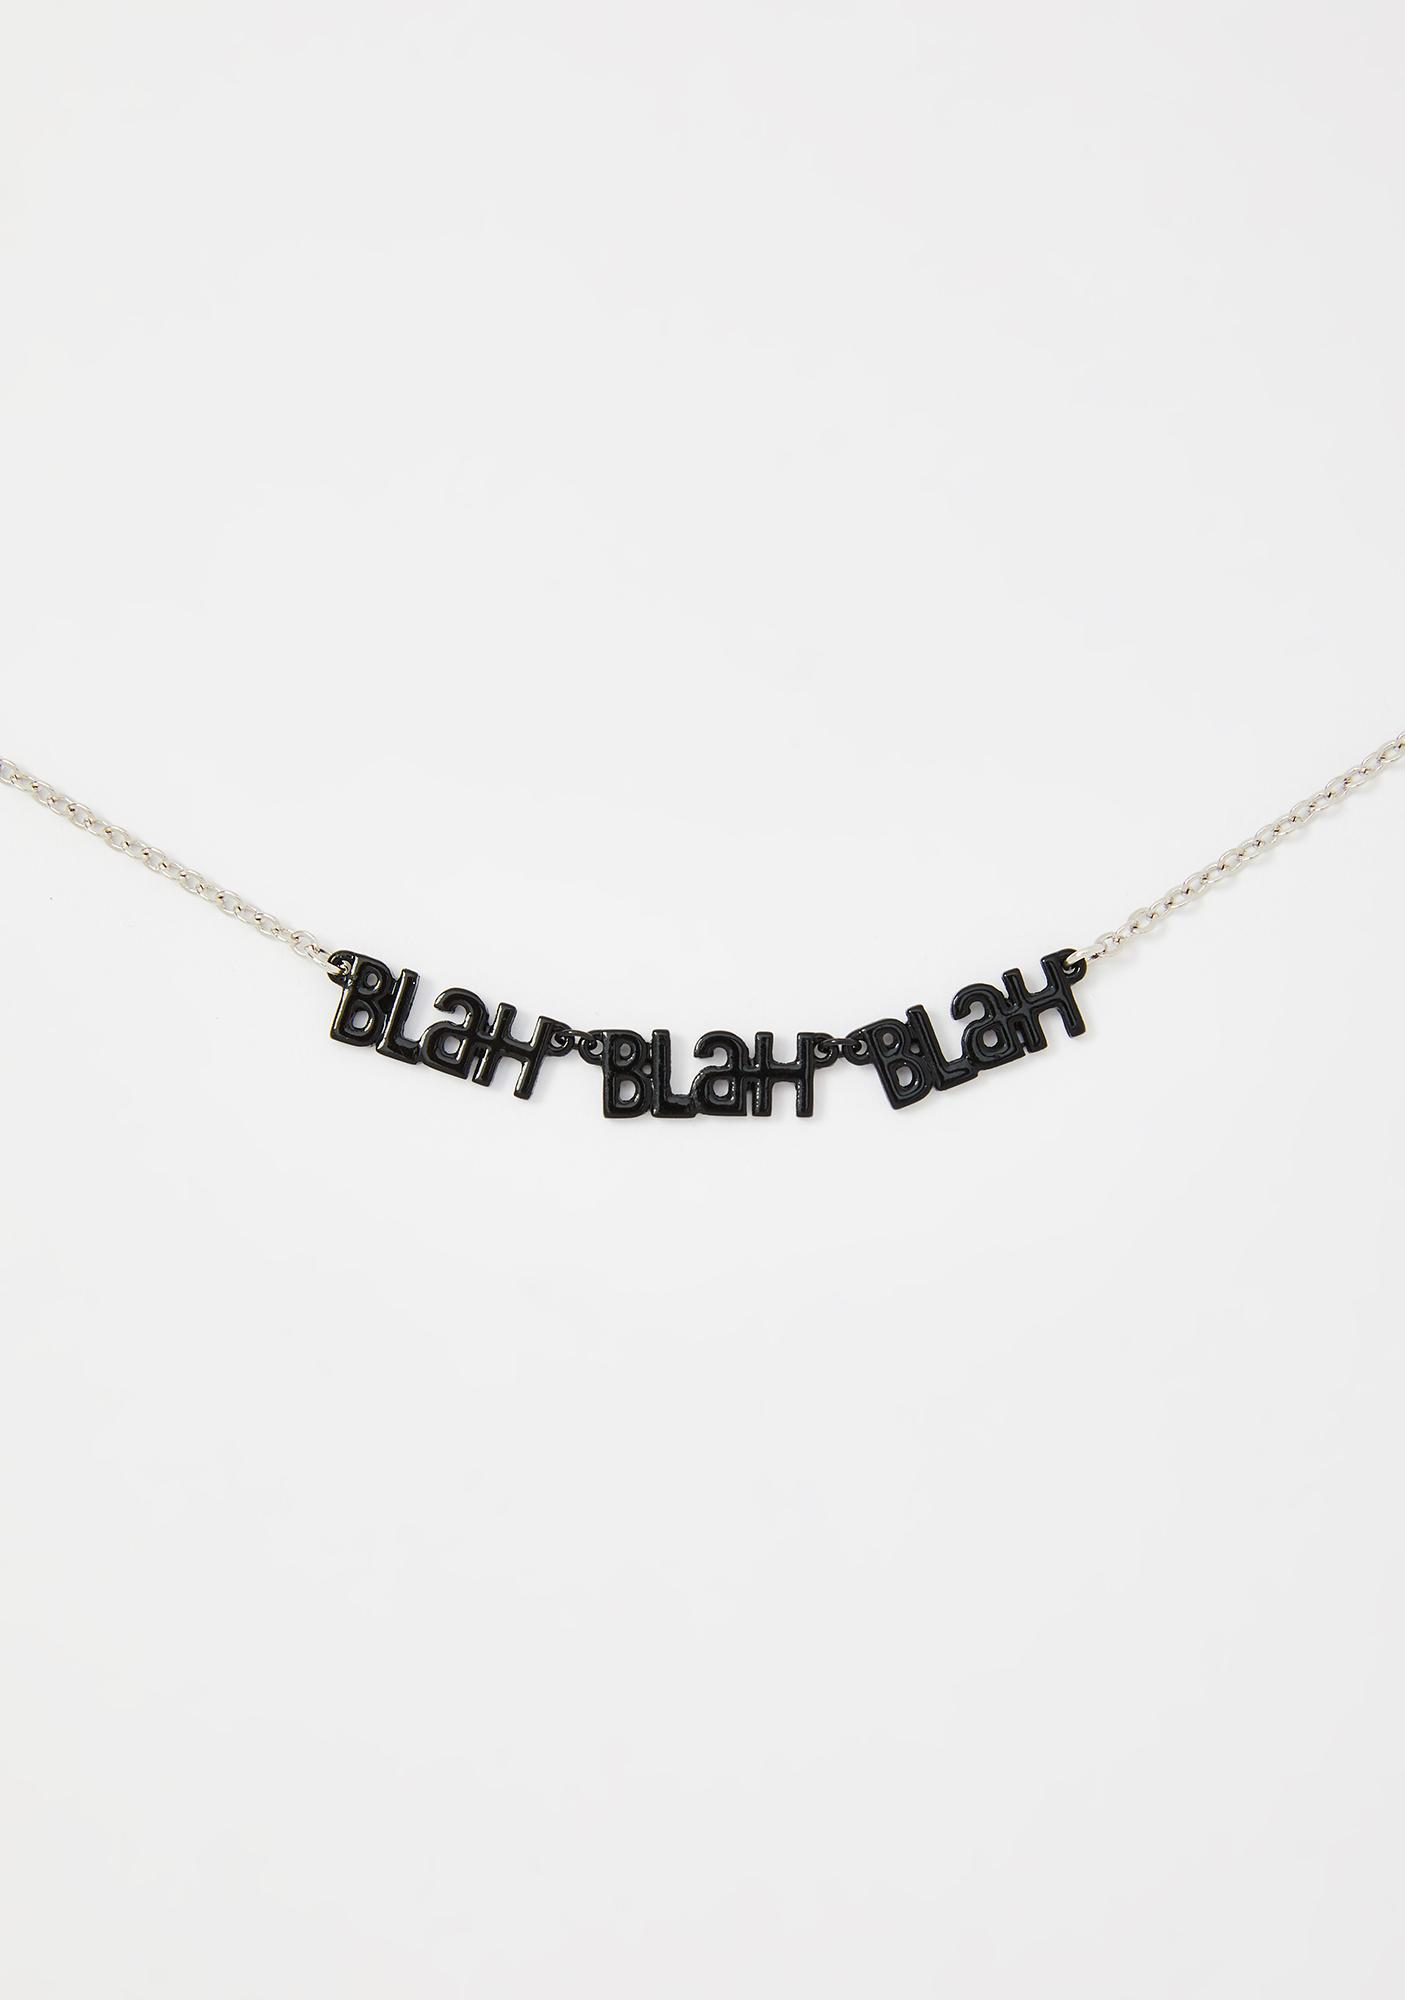 Chatterbox Charm Necklace